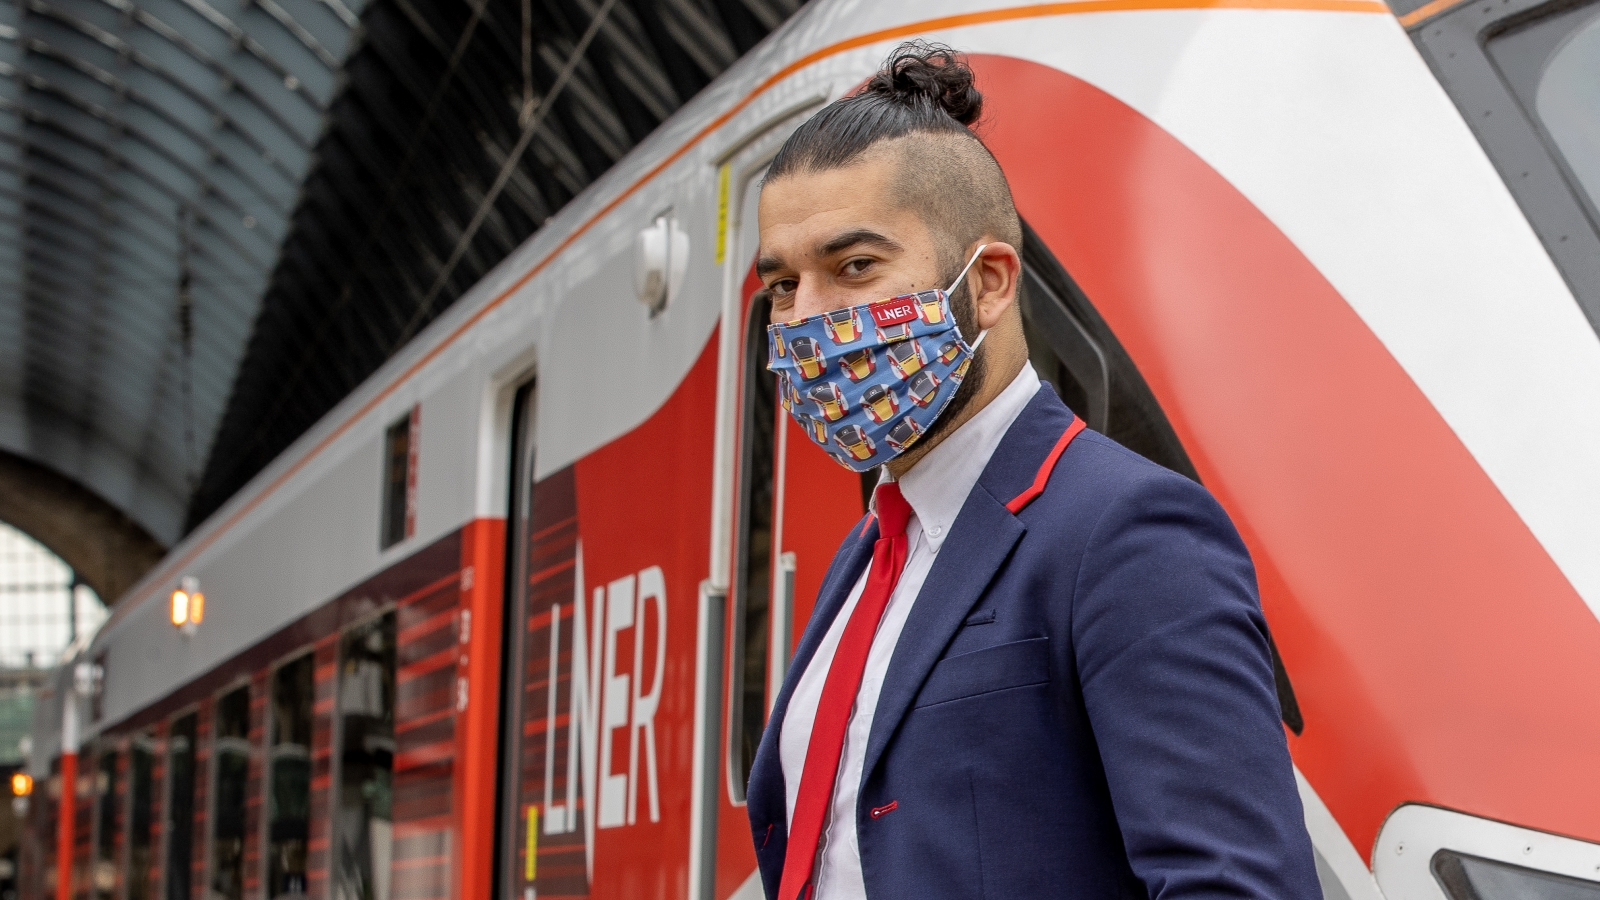 LNER MARKS £230,000 RAISED FOR CAMPAIGN AGAINST LIVING MISERABLY WITH NEW LIMITED-EDITION AZUMA FACE MASK